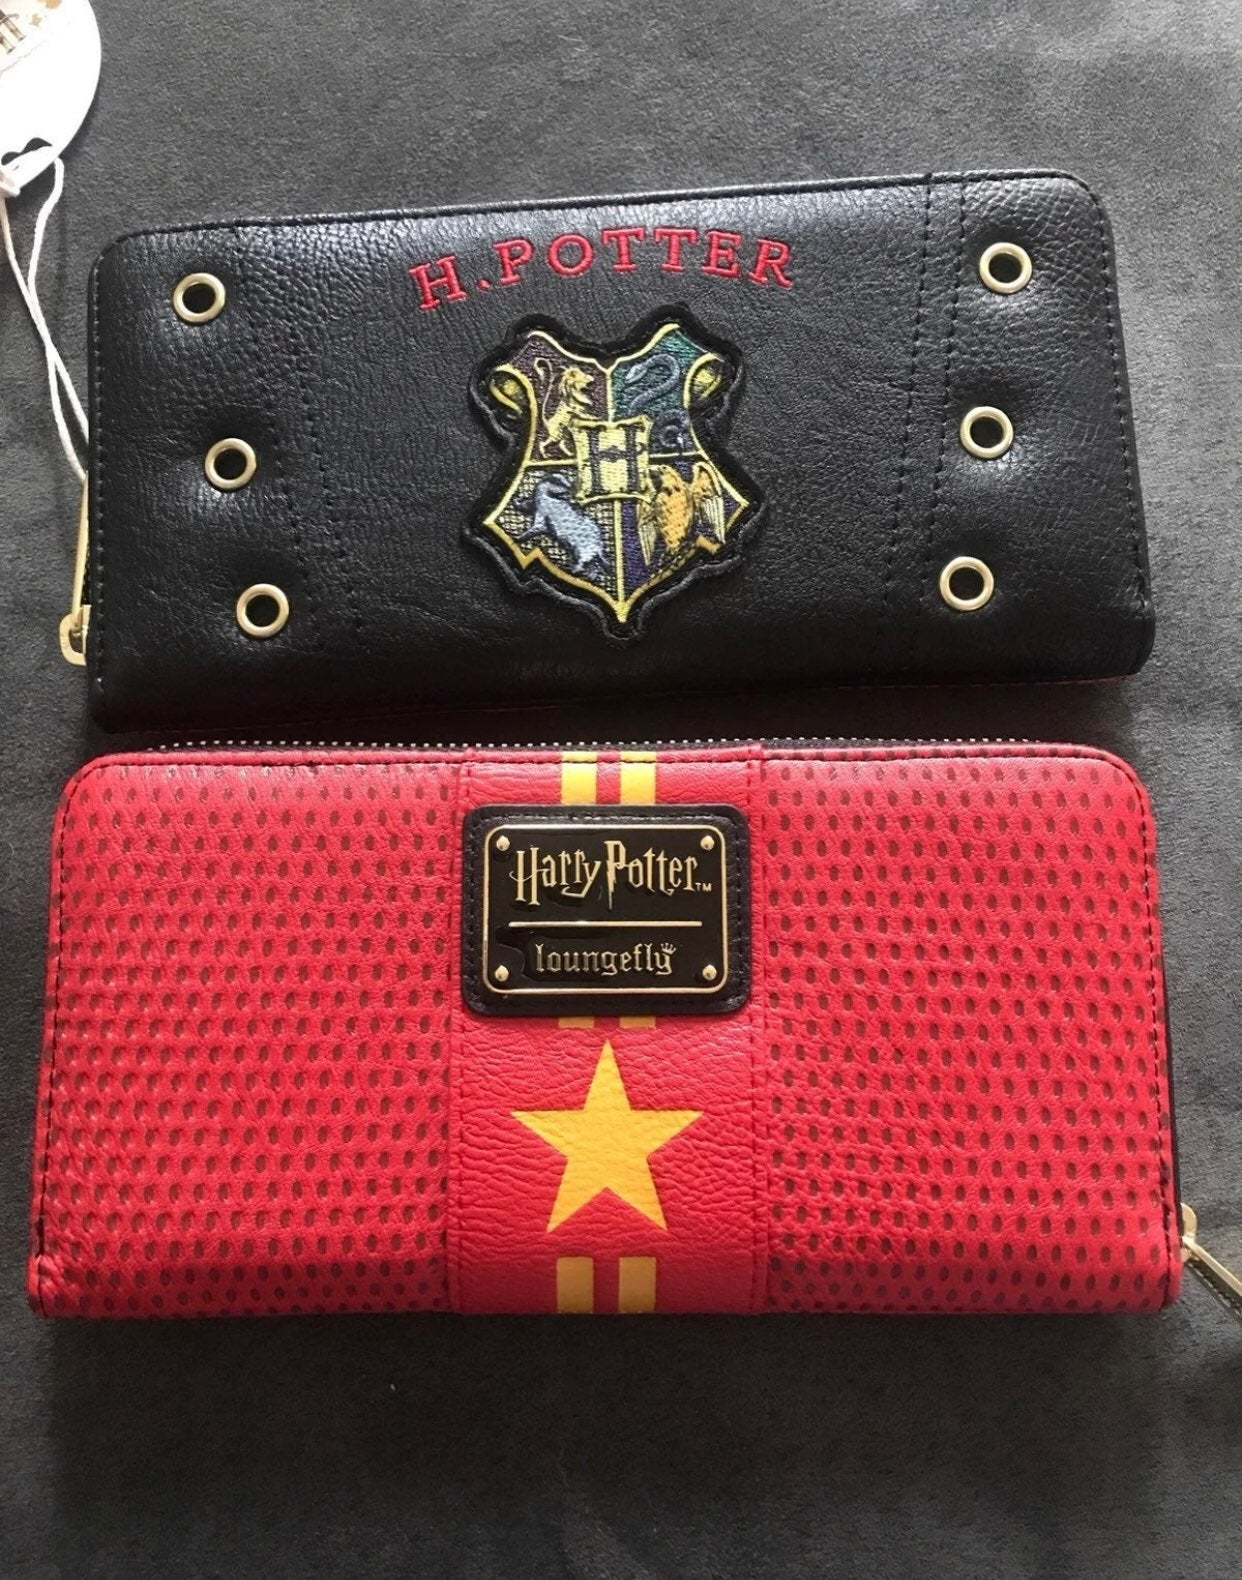 Loungefly Harry Potter Triwizard Wallet